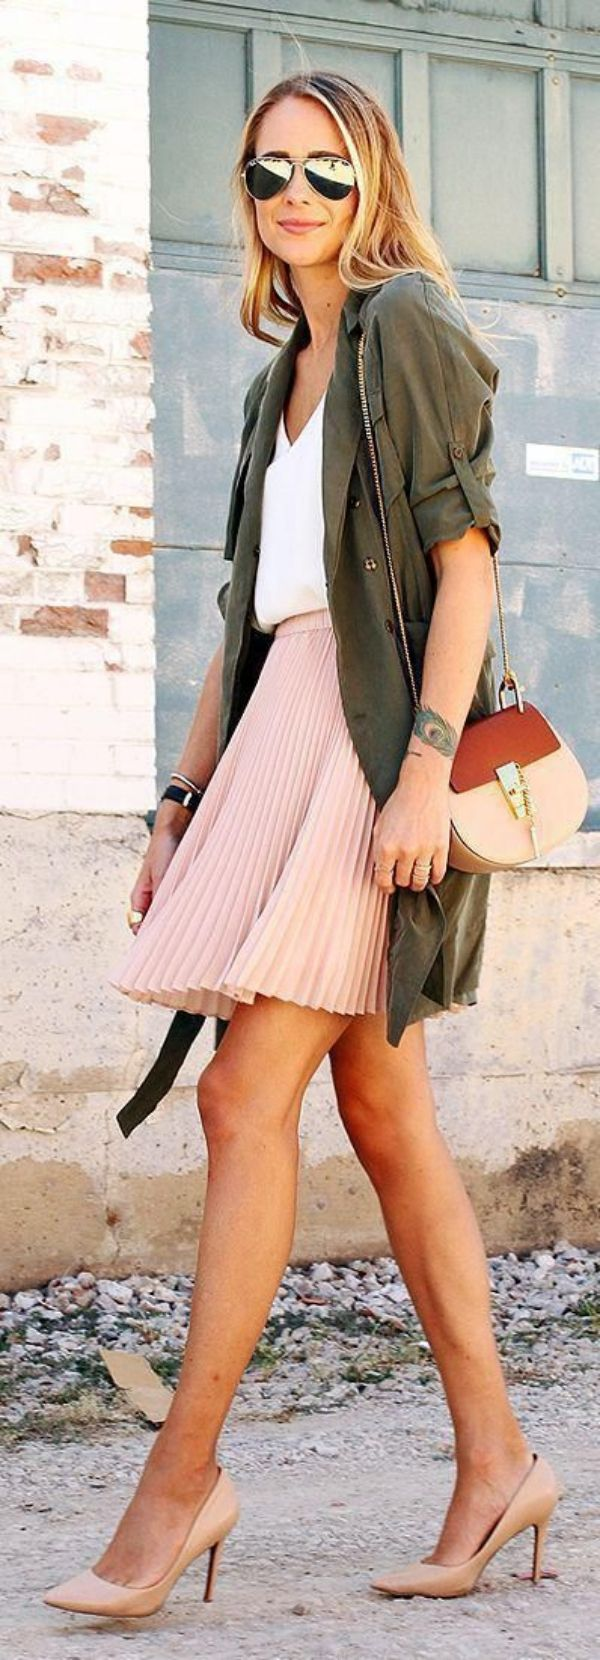 10 Lit Monday Morning Outfits To Start Your Week With